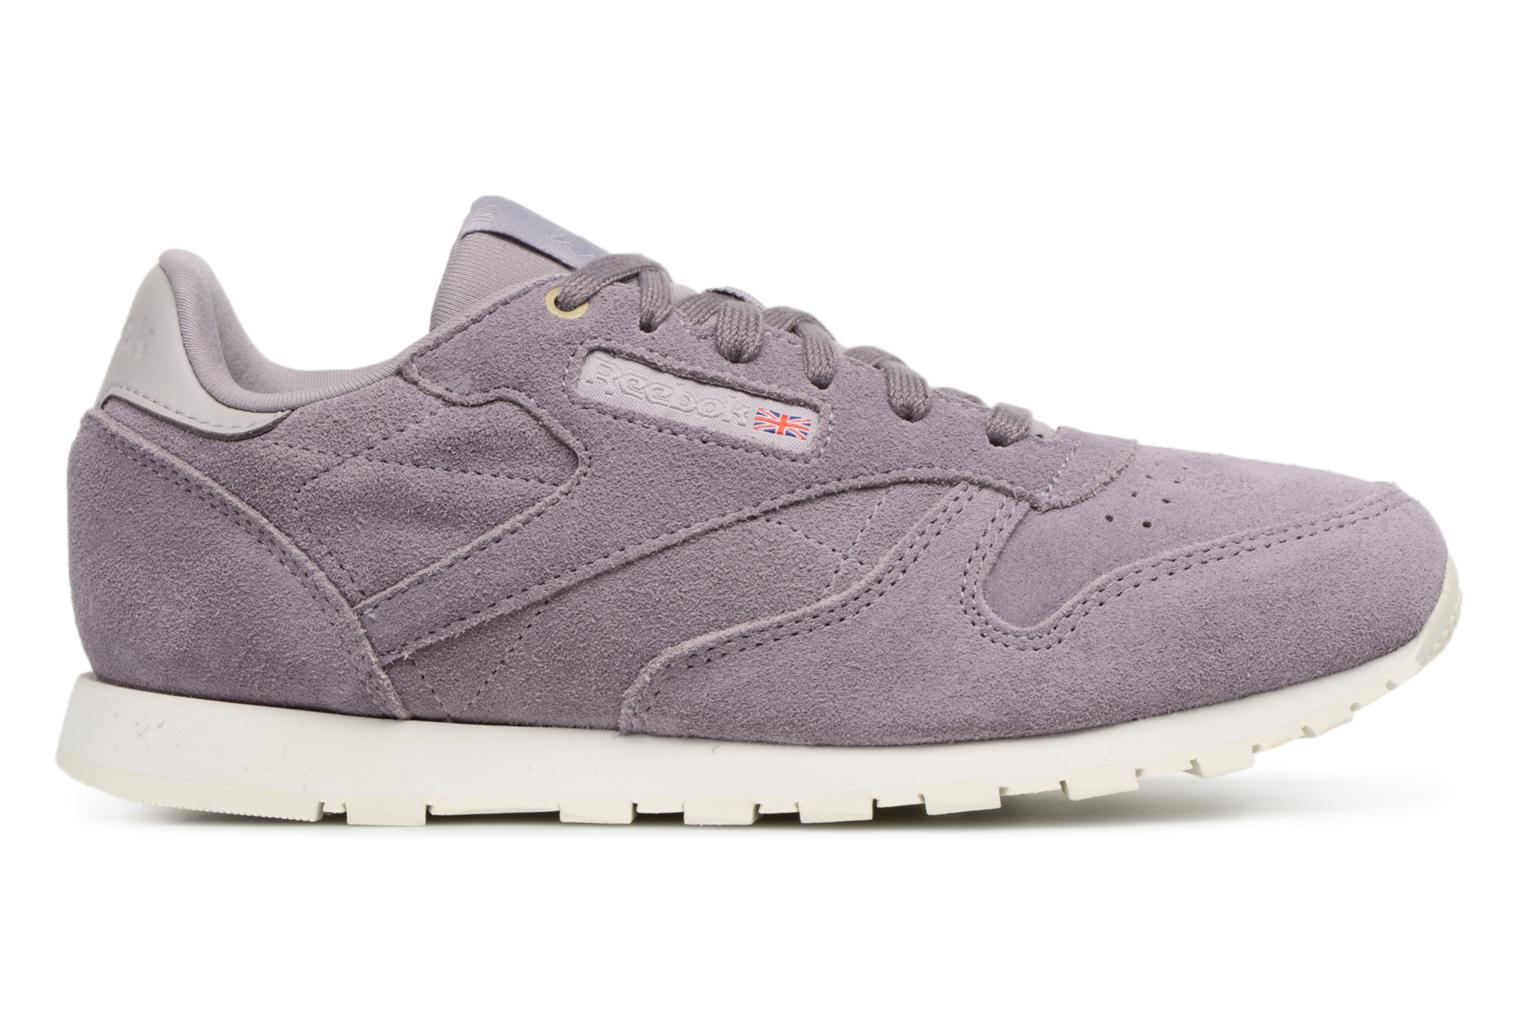 Reebok Mcc Mcc Reebok Leather Cl Leather Mcc Reebok Cl Cl Leather